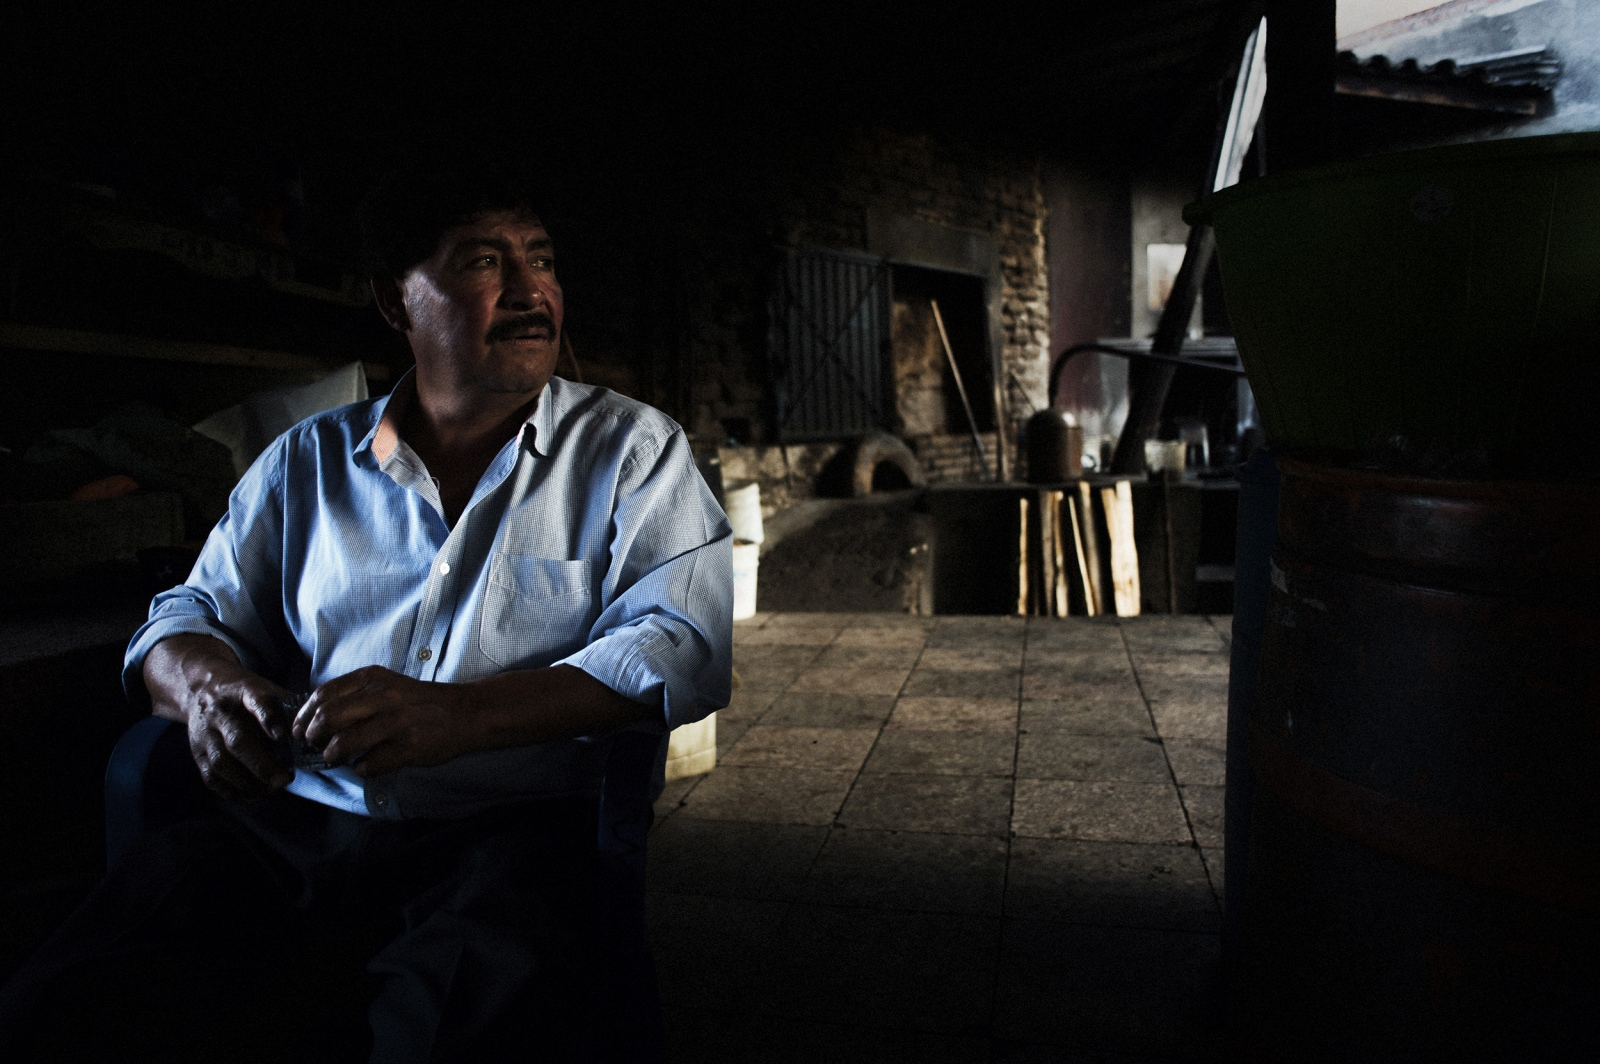 Octavio Jiménez Monterroza enjoys a glass of mezcal with friends. The future of the industry is in question, as demand is quickly outstripping supply and those trying to preserve the traditional, artisinal means of production are having to compete with larger producers.